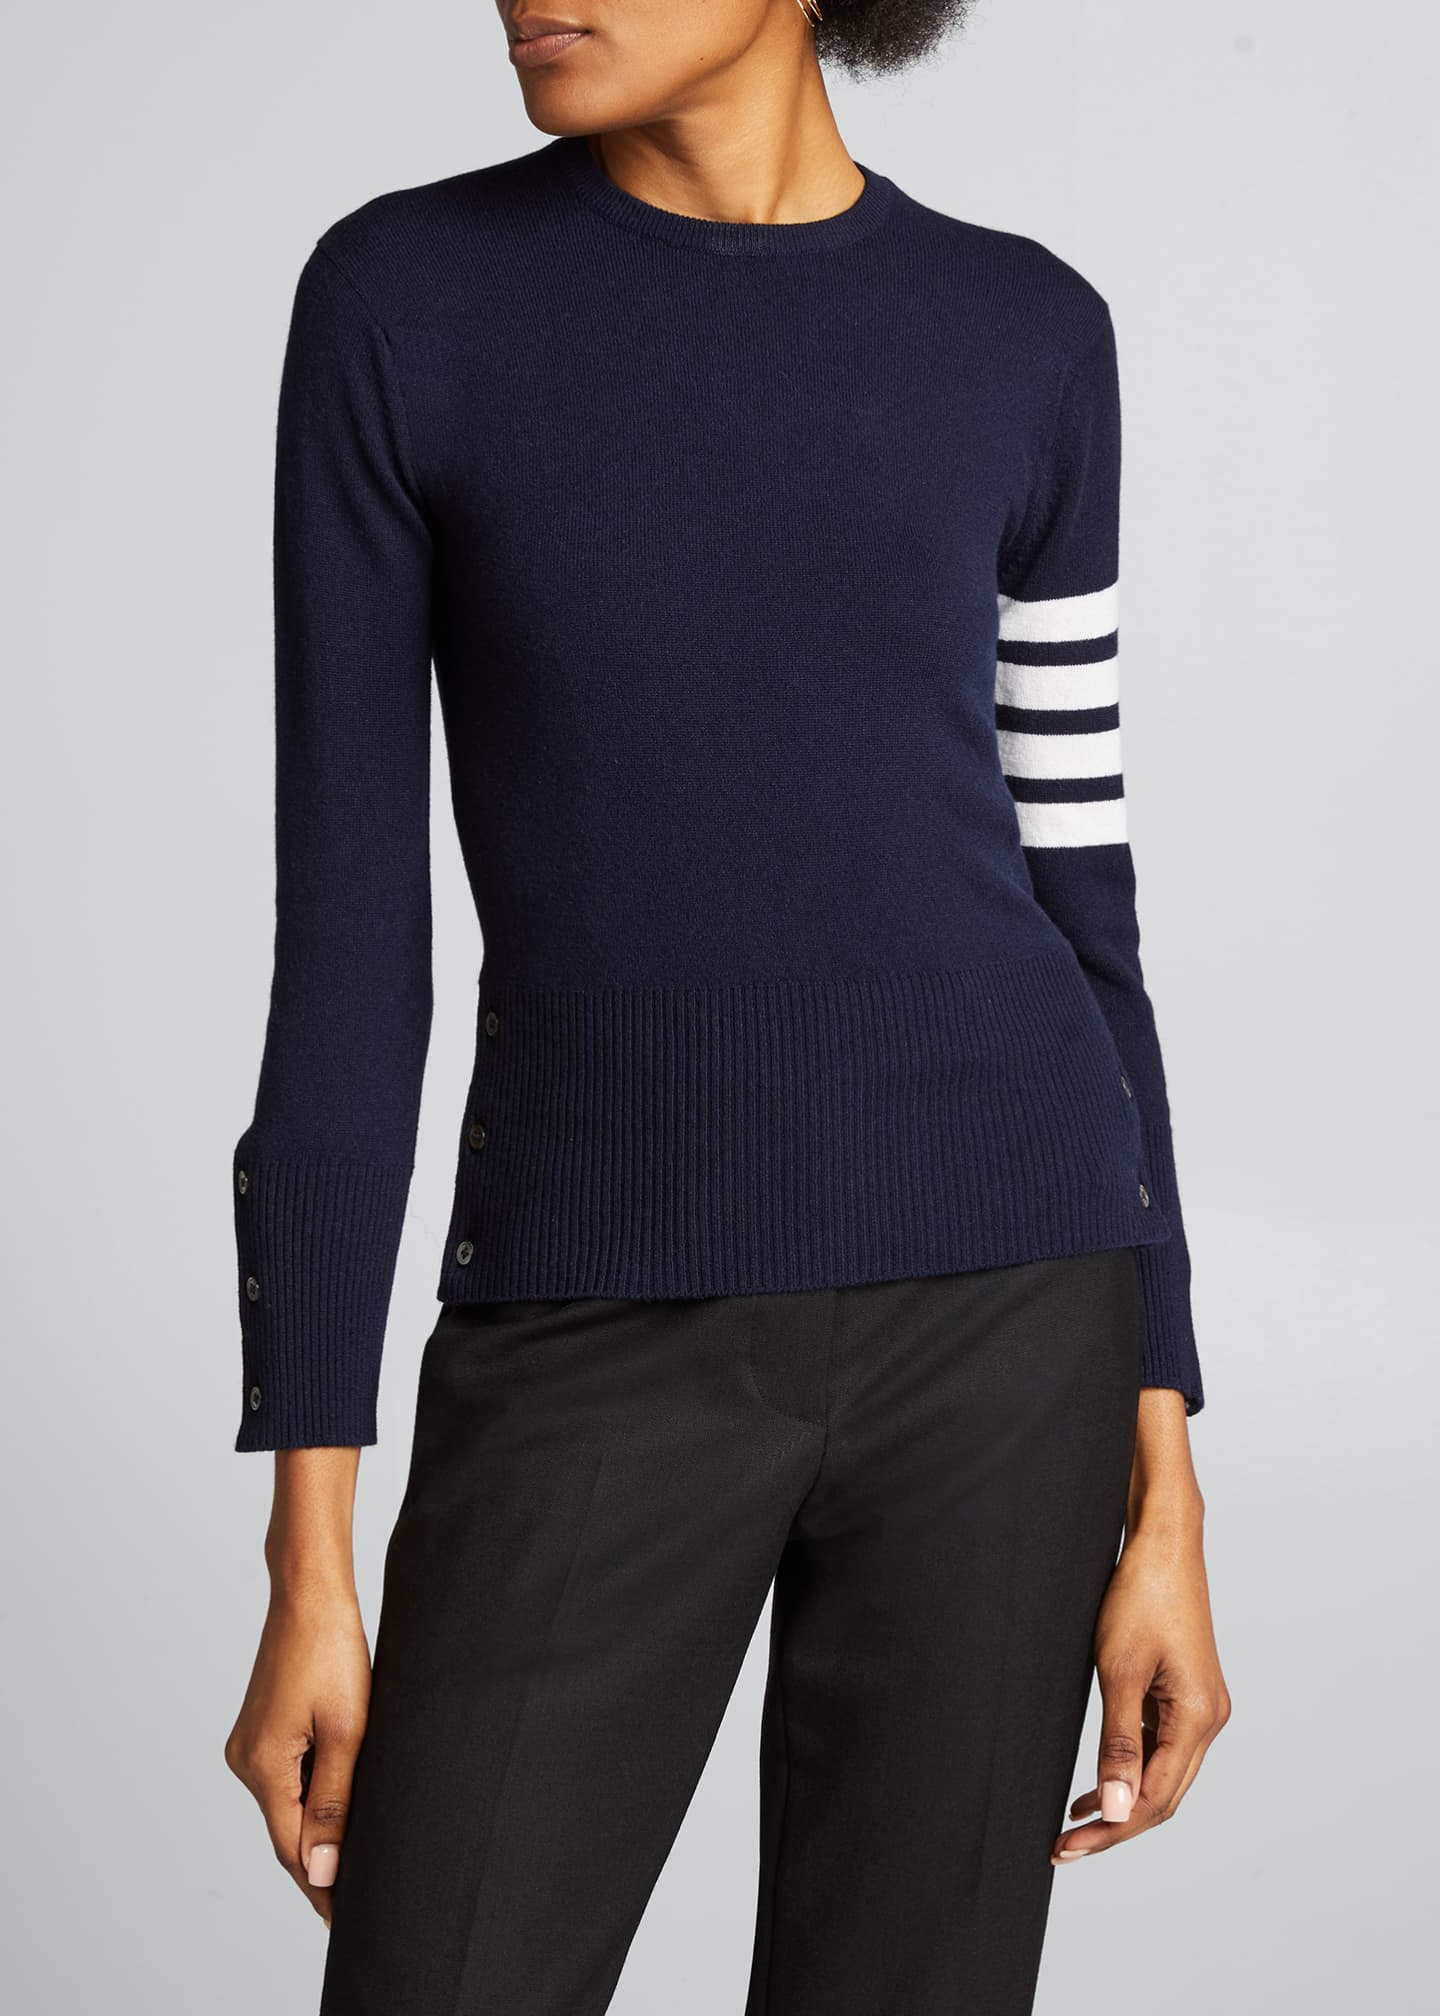 Image 3 of 5: Classic Cashmere Pullover with 4-Bar Stripes